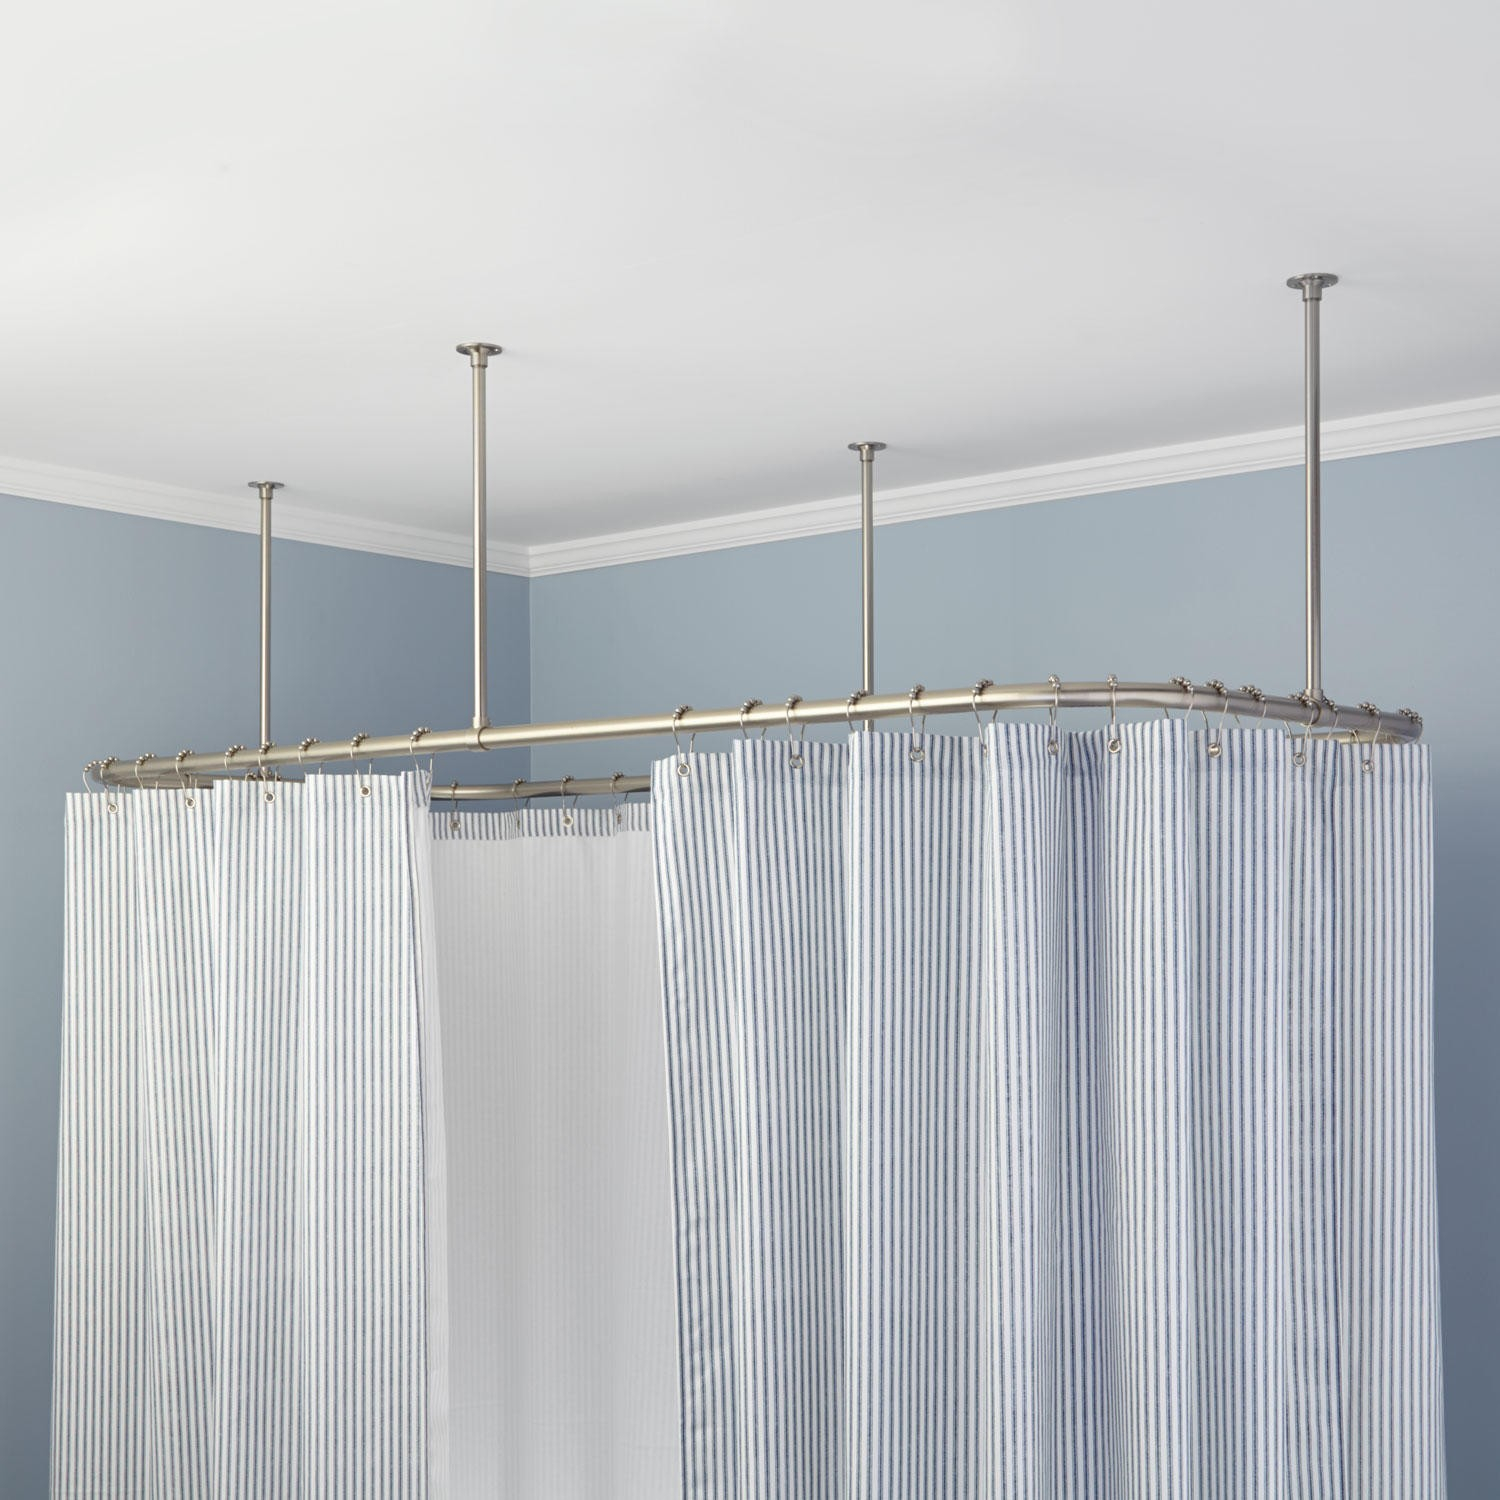 Oval Shower Curtain Rod Ideas Bed And Shower The Height Of The with proportions 1500 X 1500